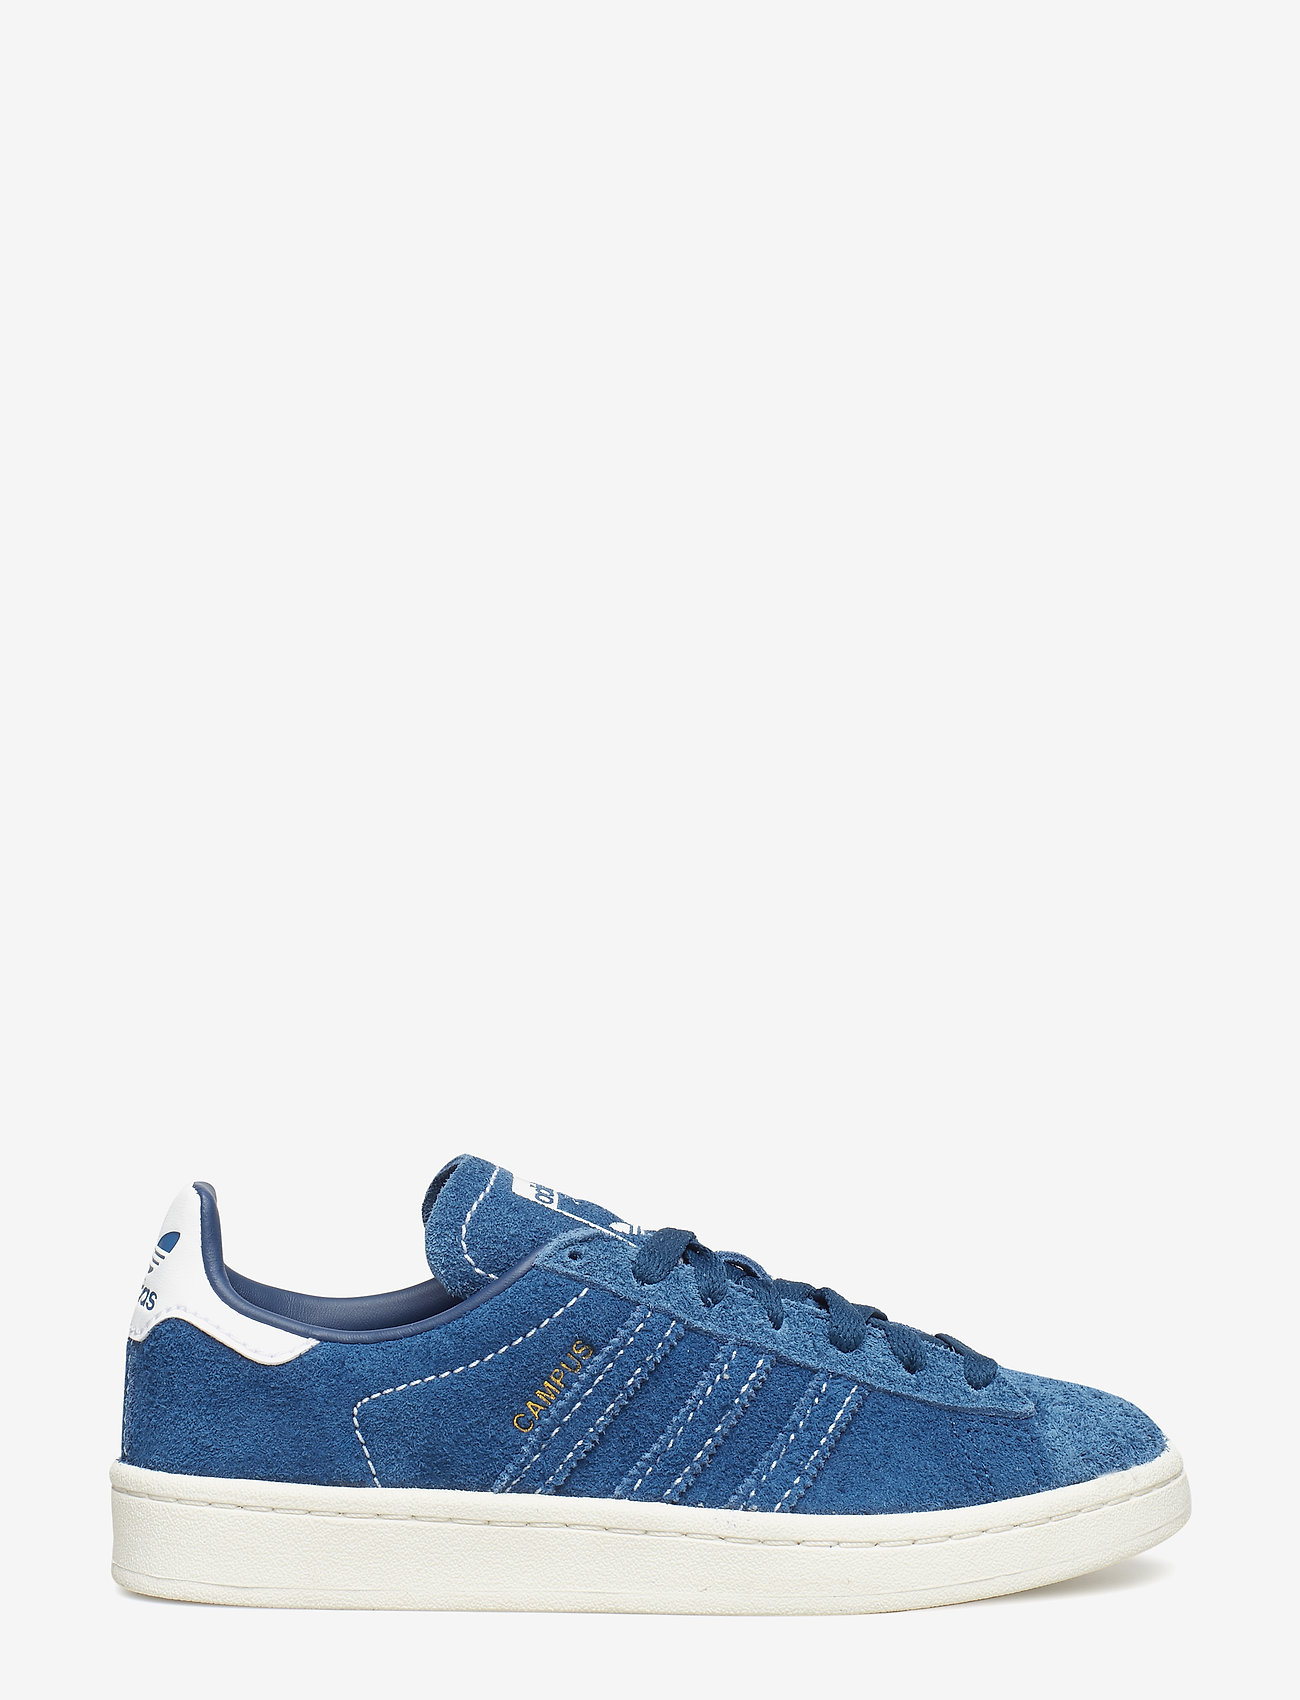 Adidas Originals Campus - Sneakers